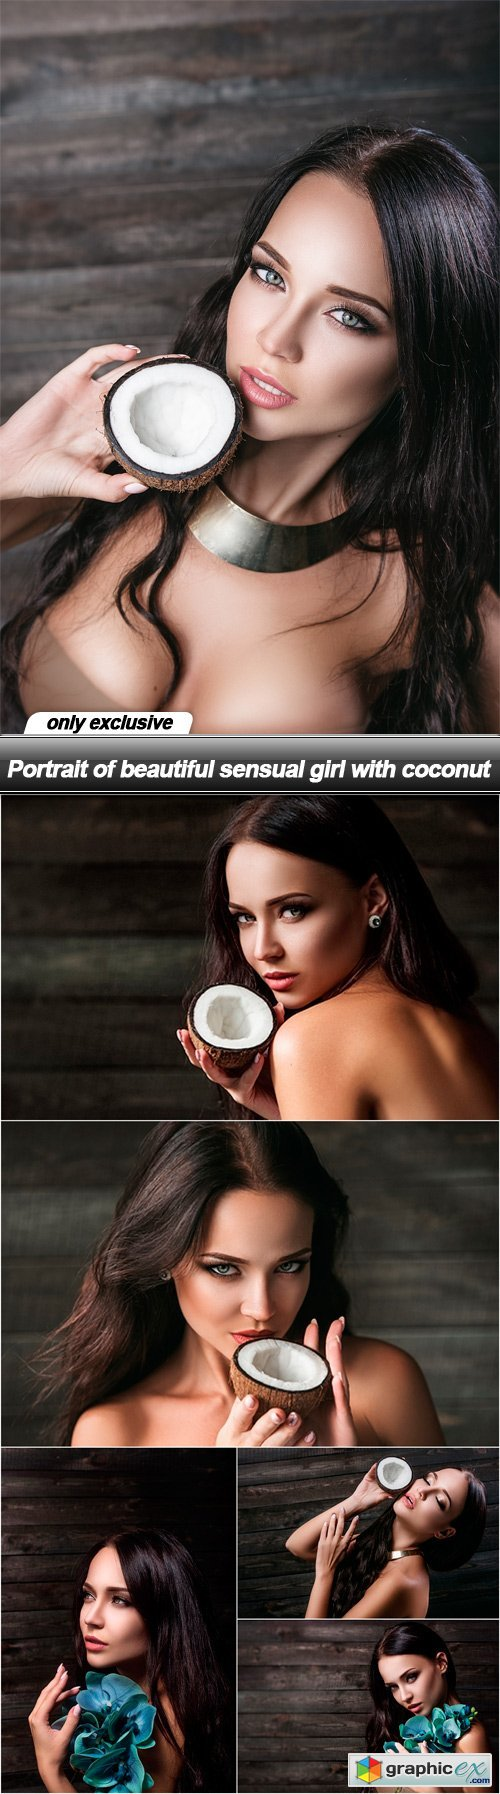 Portrait of beautiful sensual girl with coconut - 6 UHQ JPEG